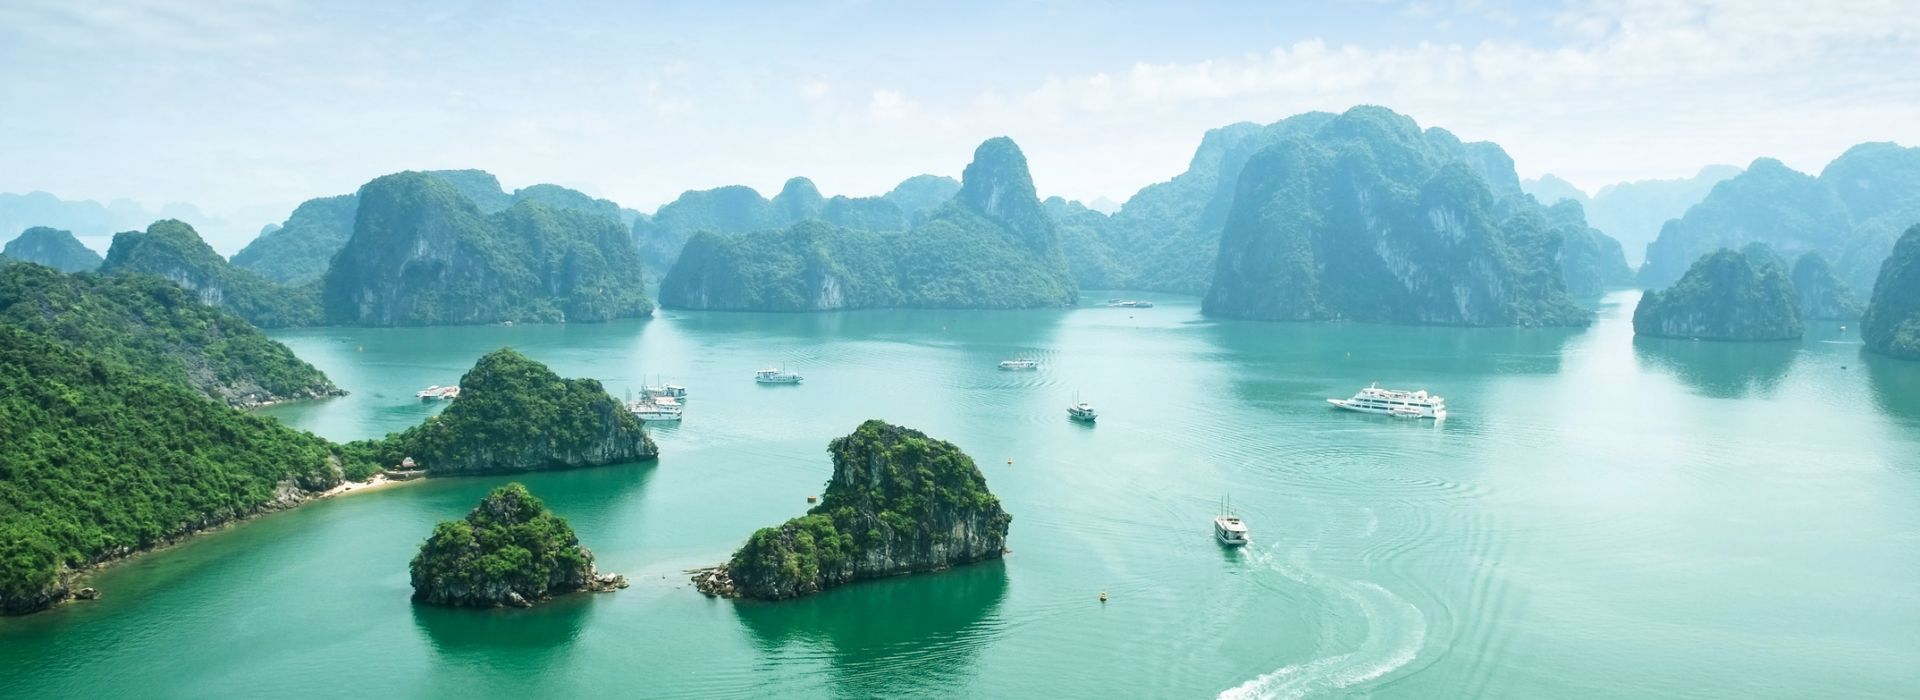 Sailing, yachting and motor boating Tours in Ho Chi Minh City